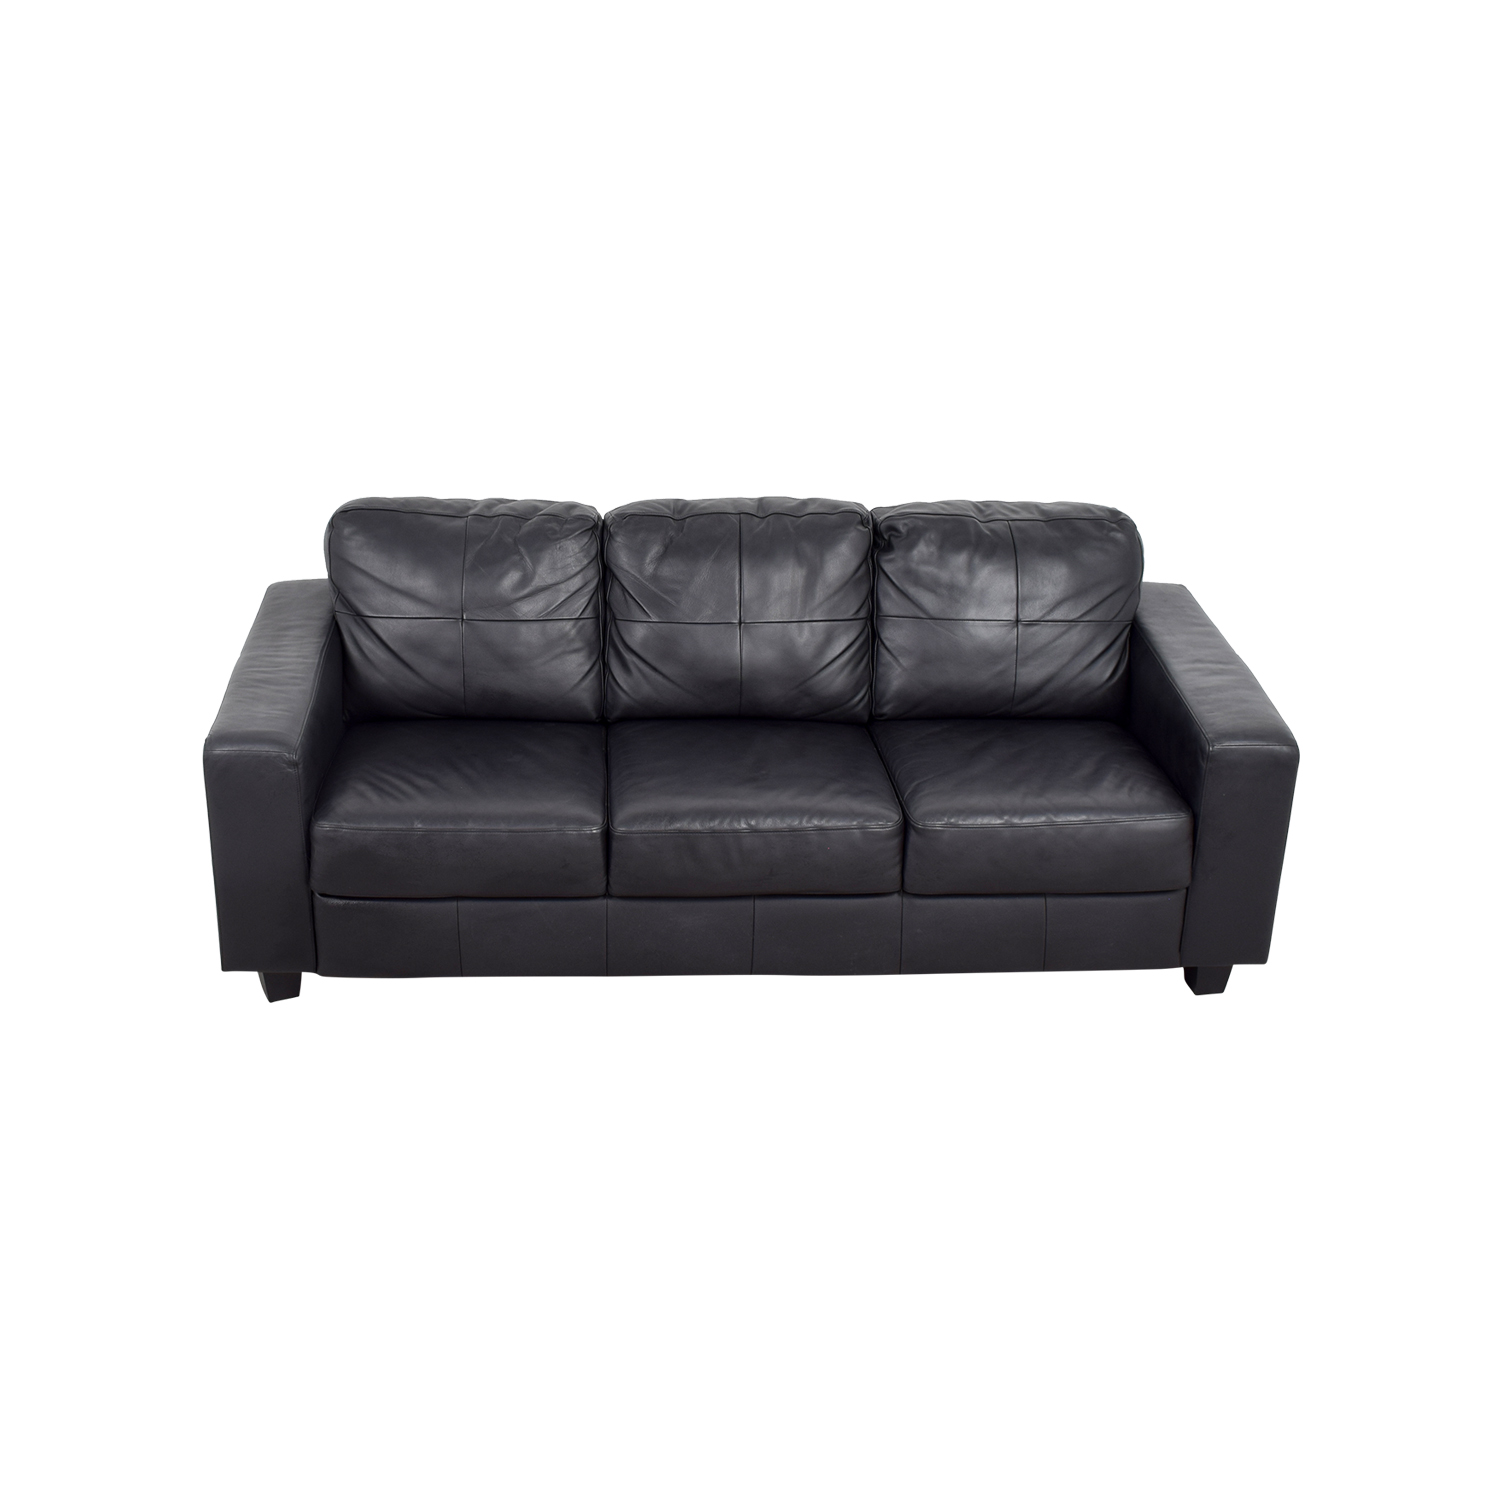 Ikea Skogaby Black Leather Sofa Clic Sofas